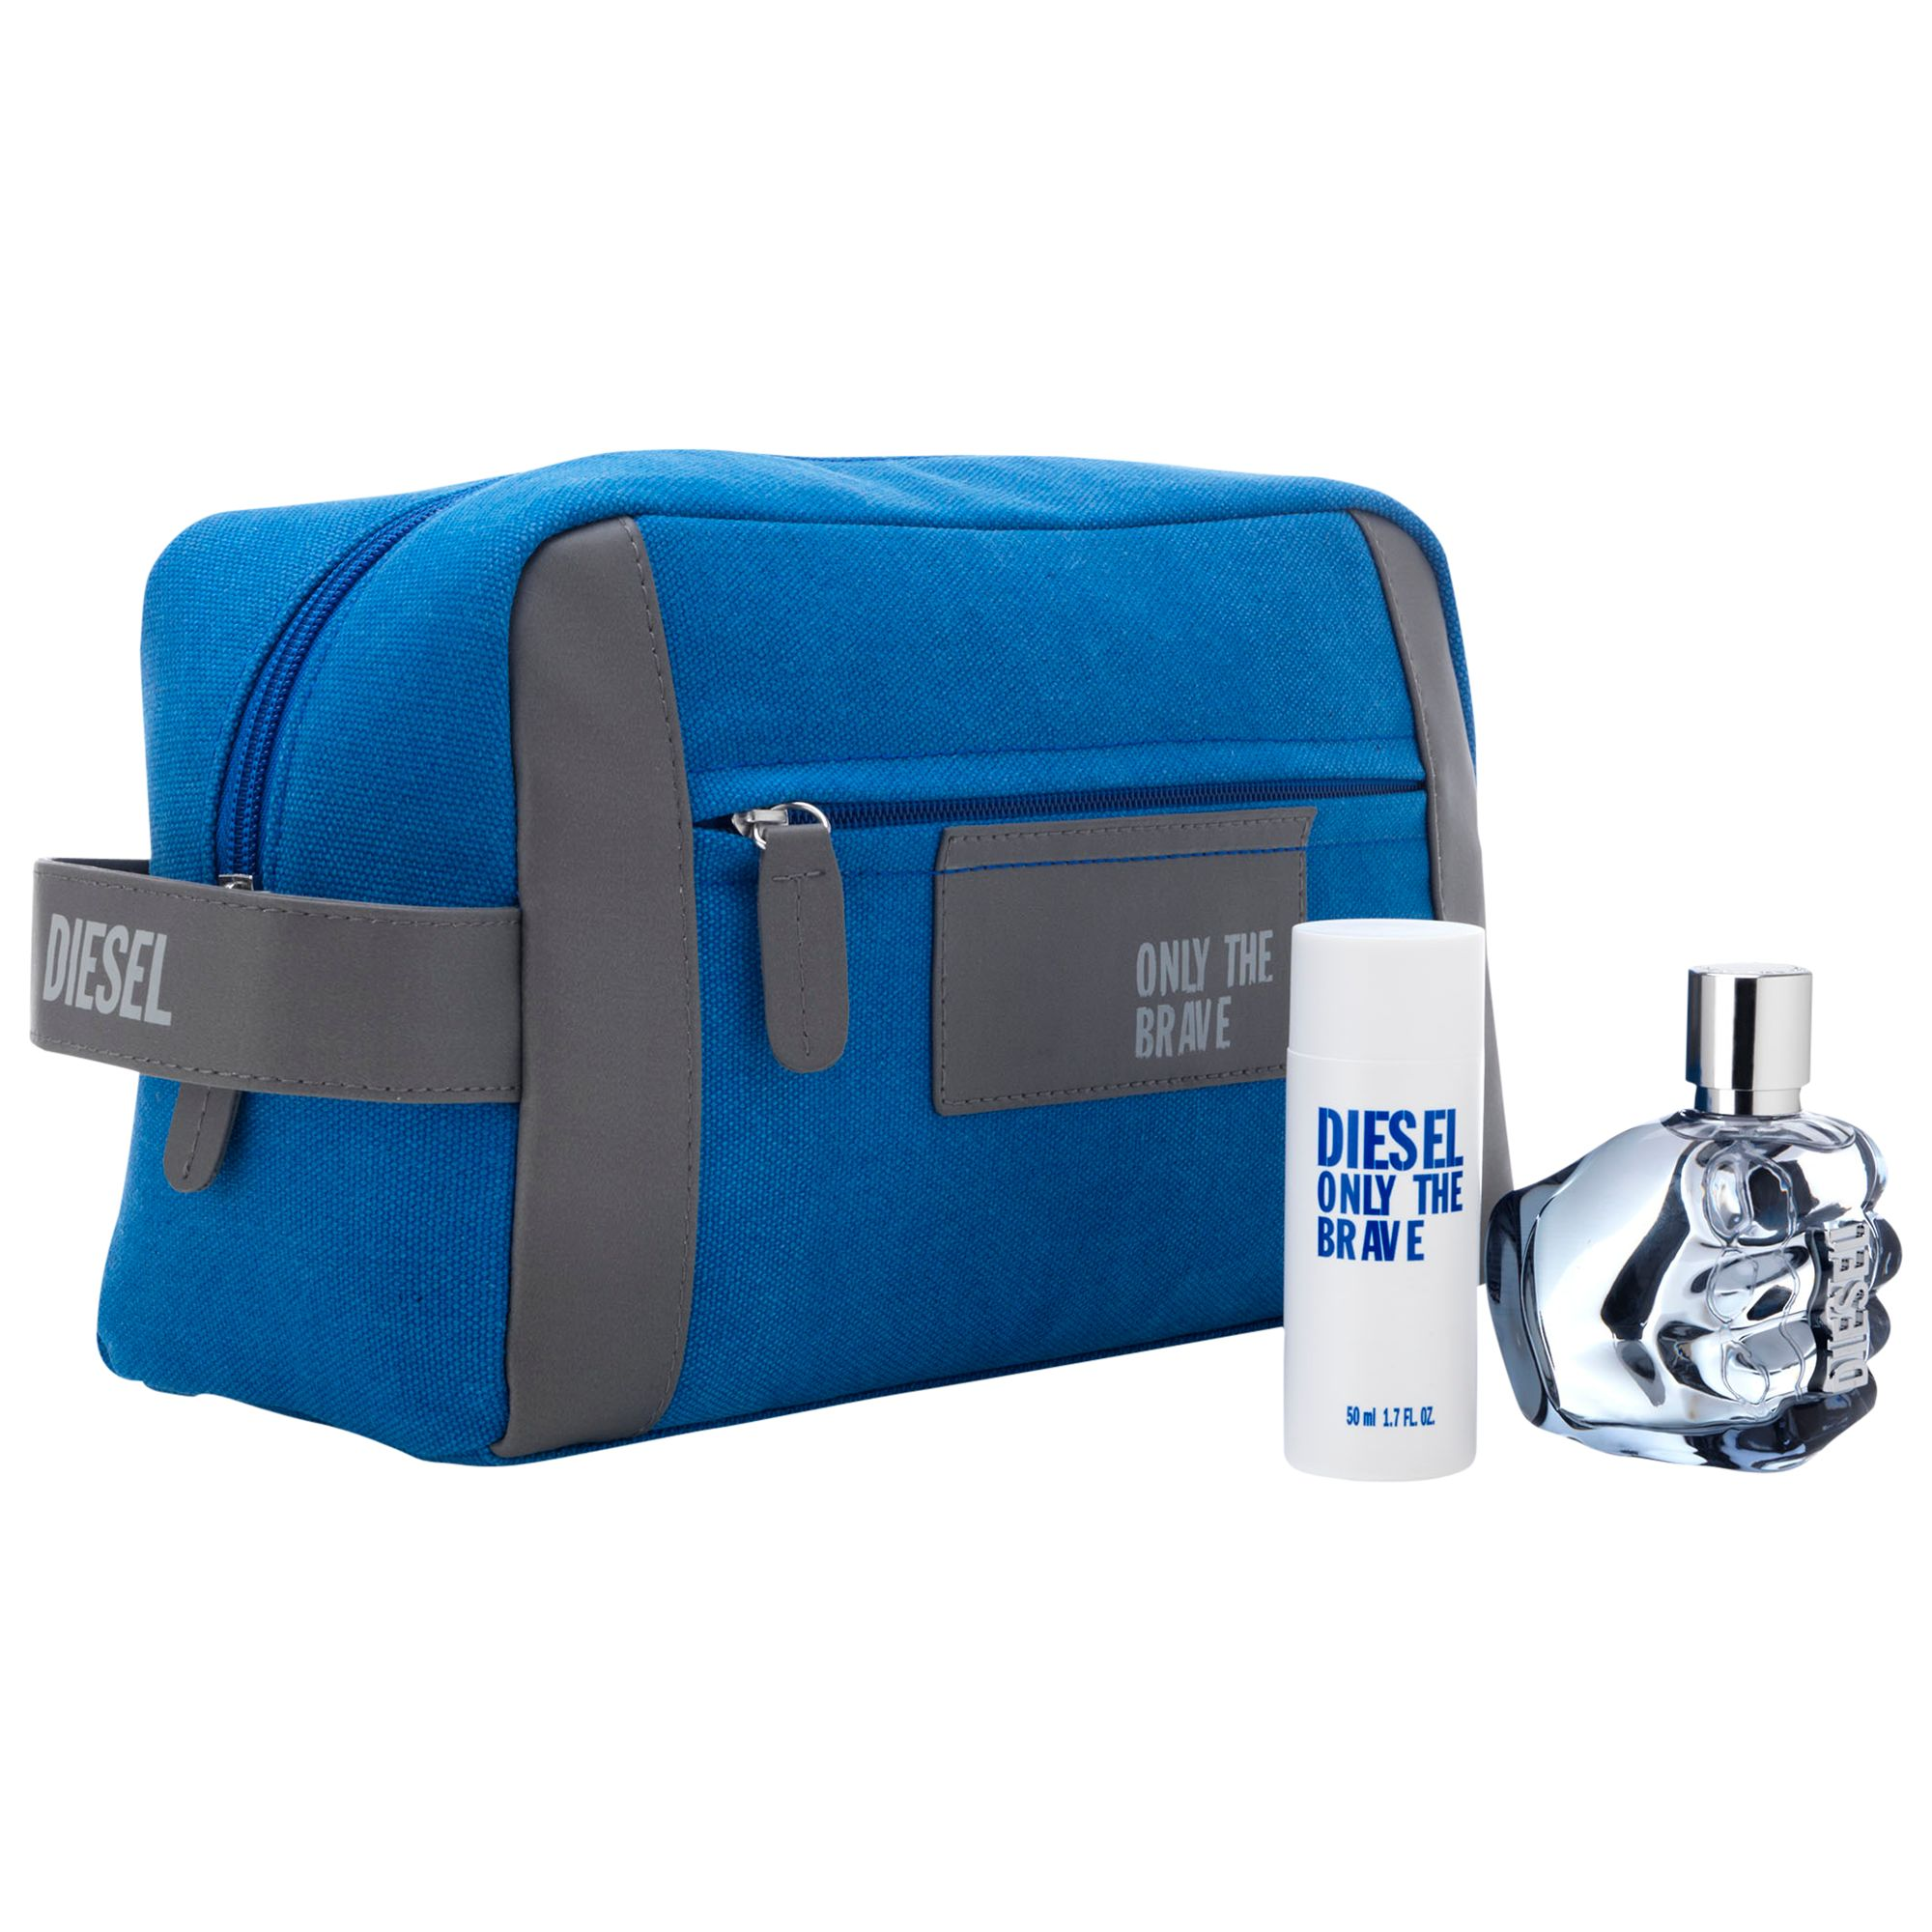 Diesel only the brave shop for cheap fragrance and save for Diesel only the brave tattoo gift set 50ml